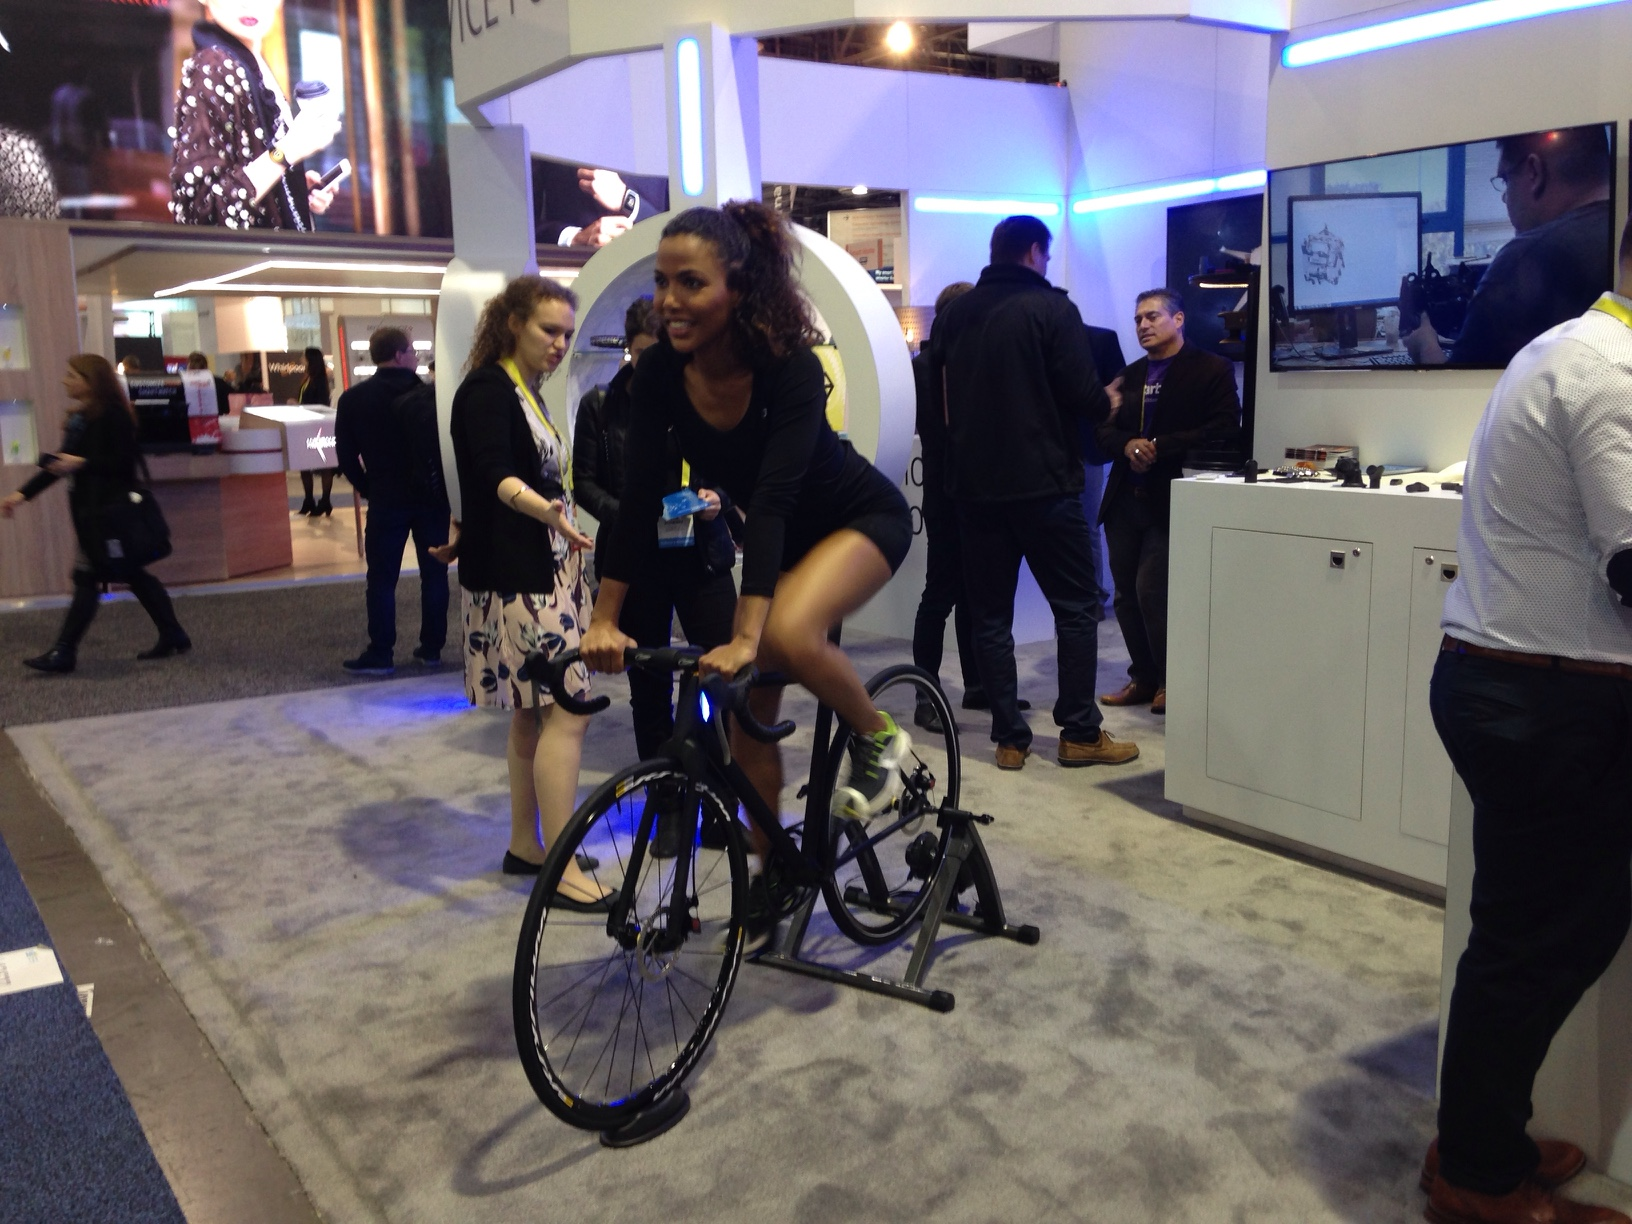 Discover the Sculpteo bike project at CES 2017